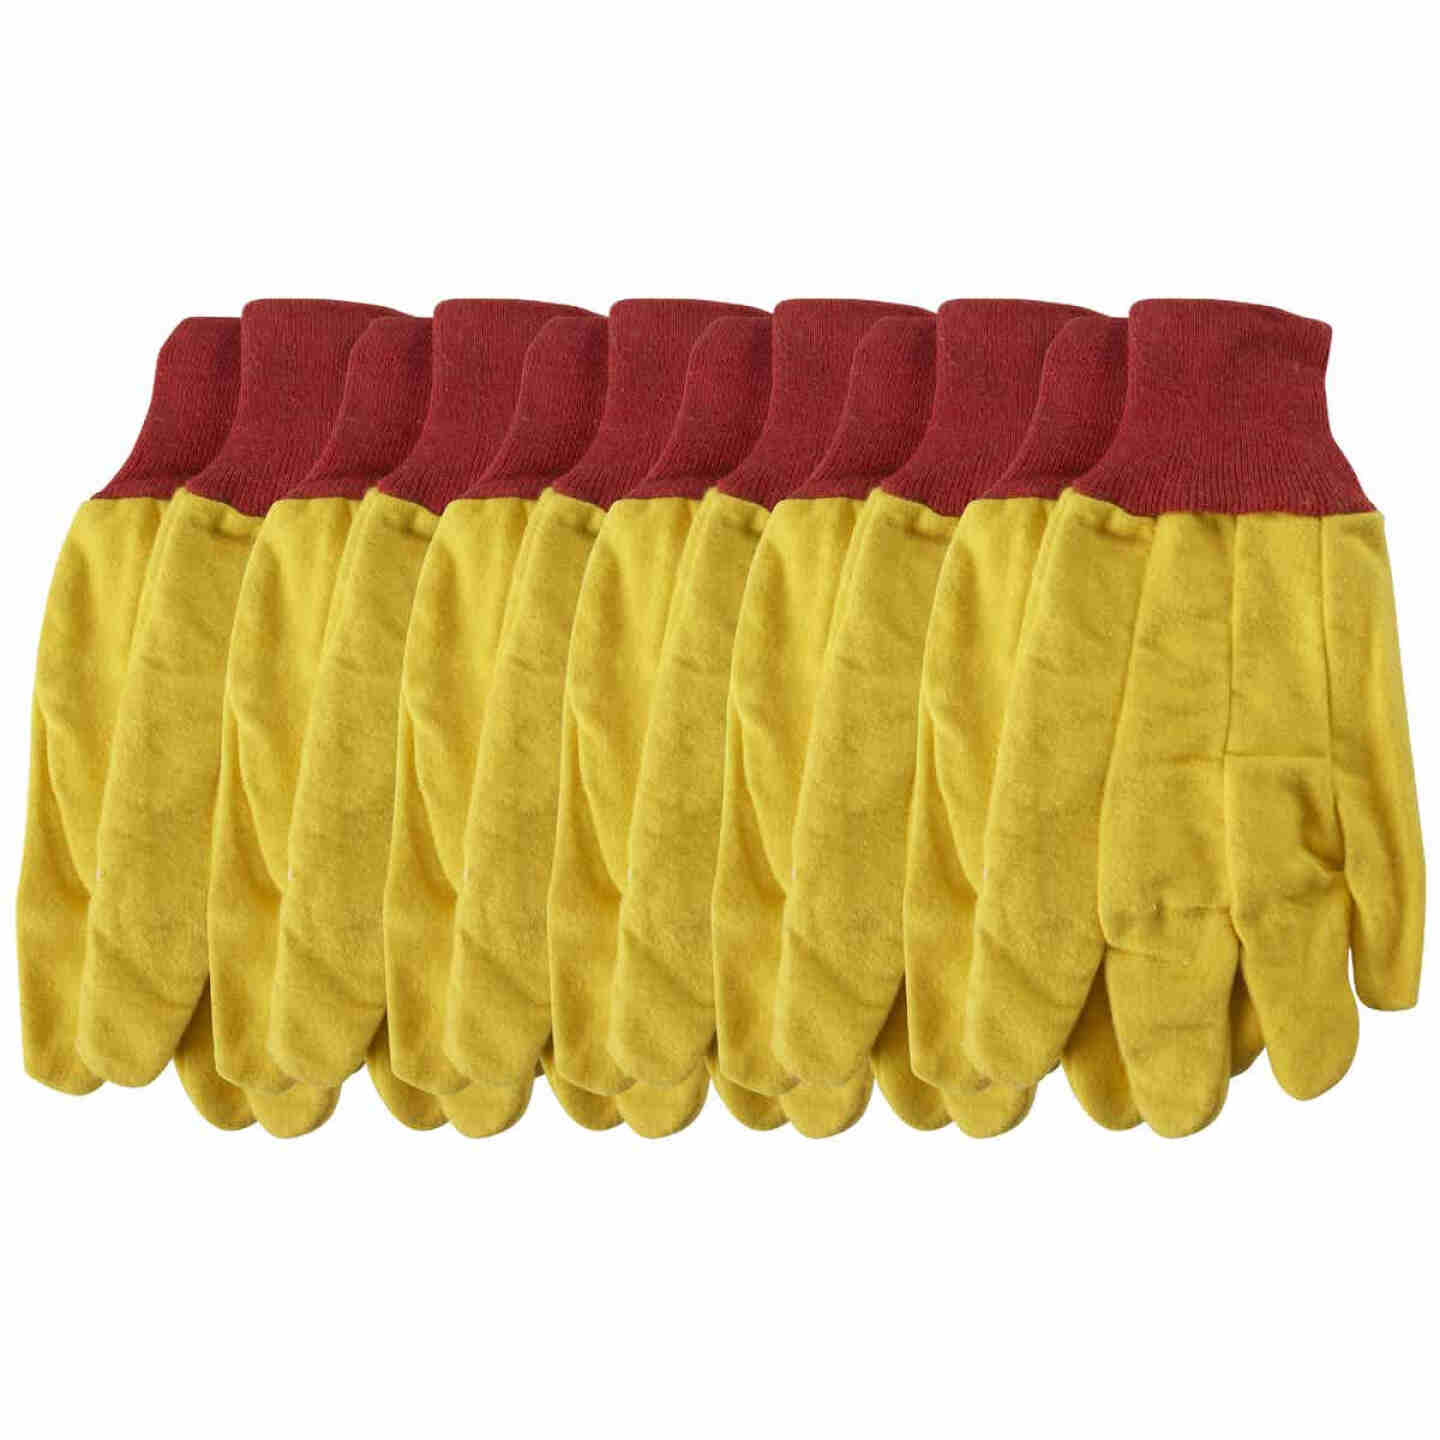 Do it Men's Large Fleece Chore Glove (6-Pack) Image 3